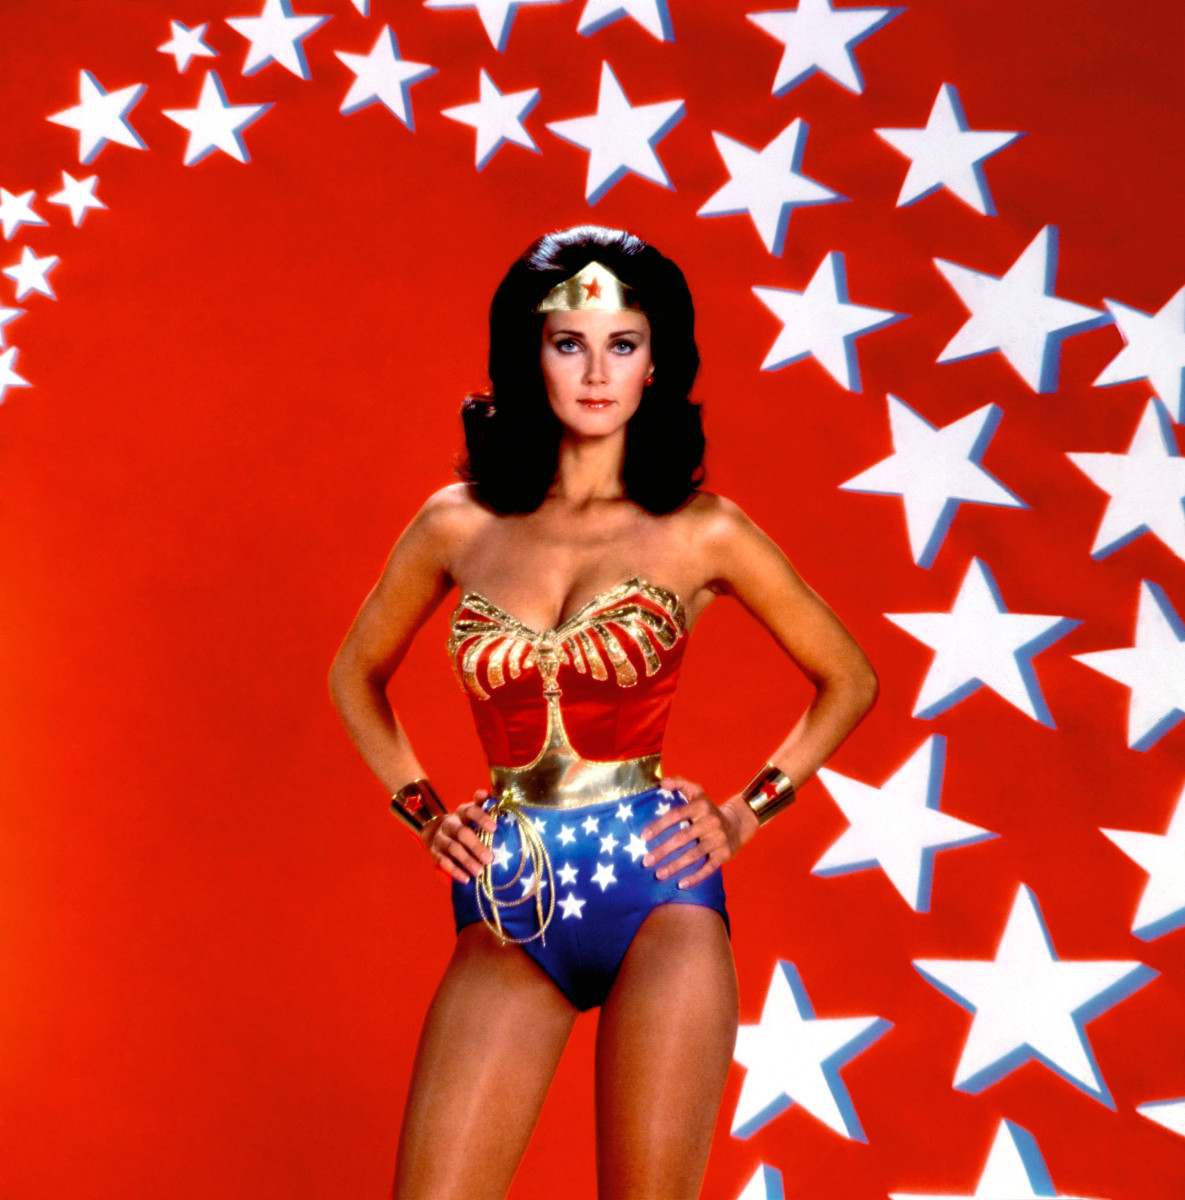 Linda Carter is who everyone thinks of when they talk about Wonder Woman